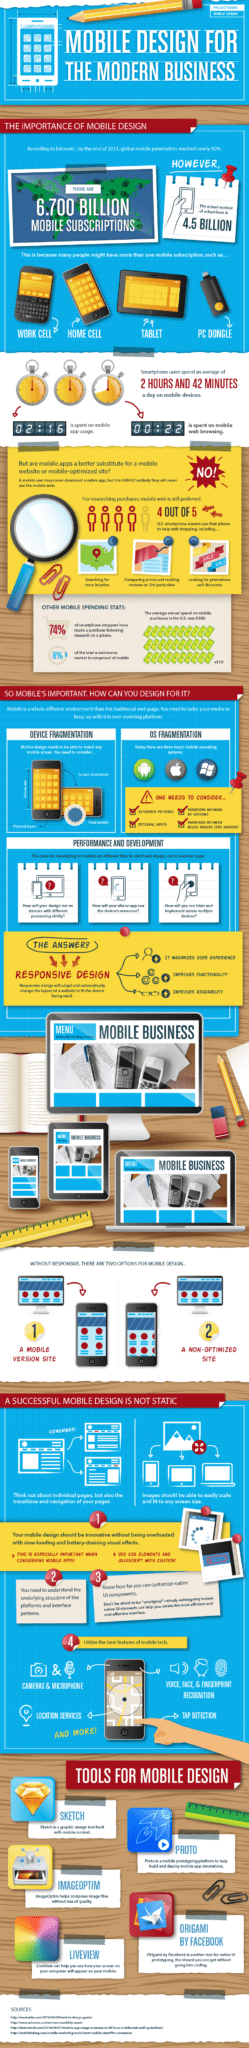 The importance of mobile design